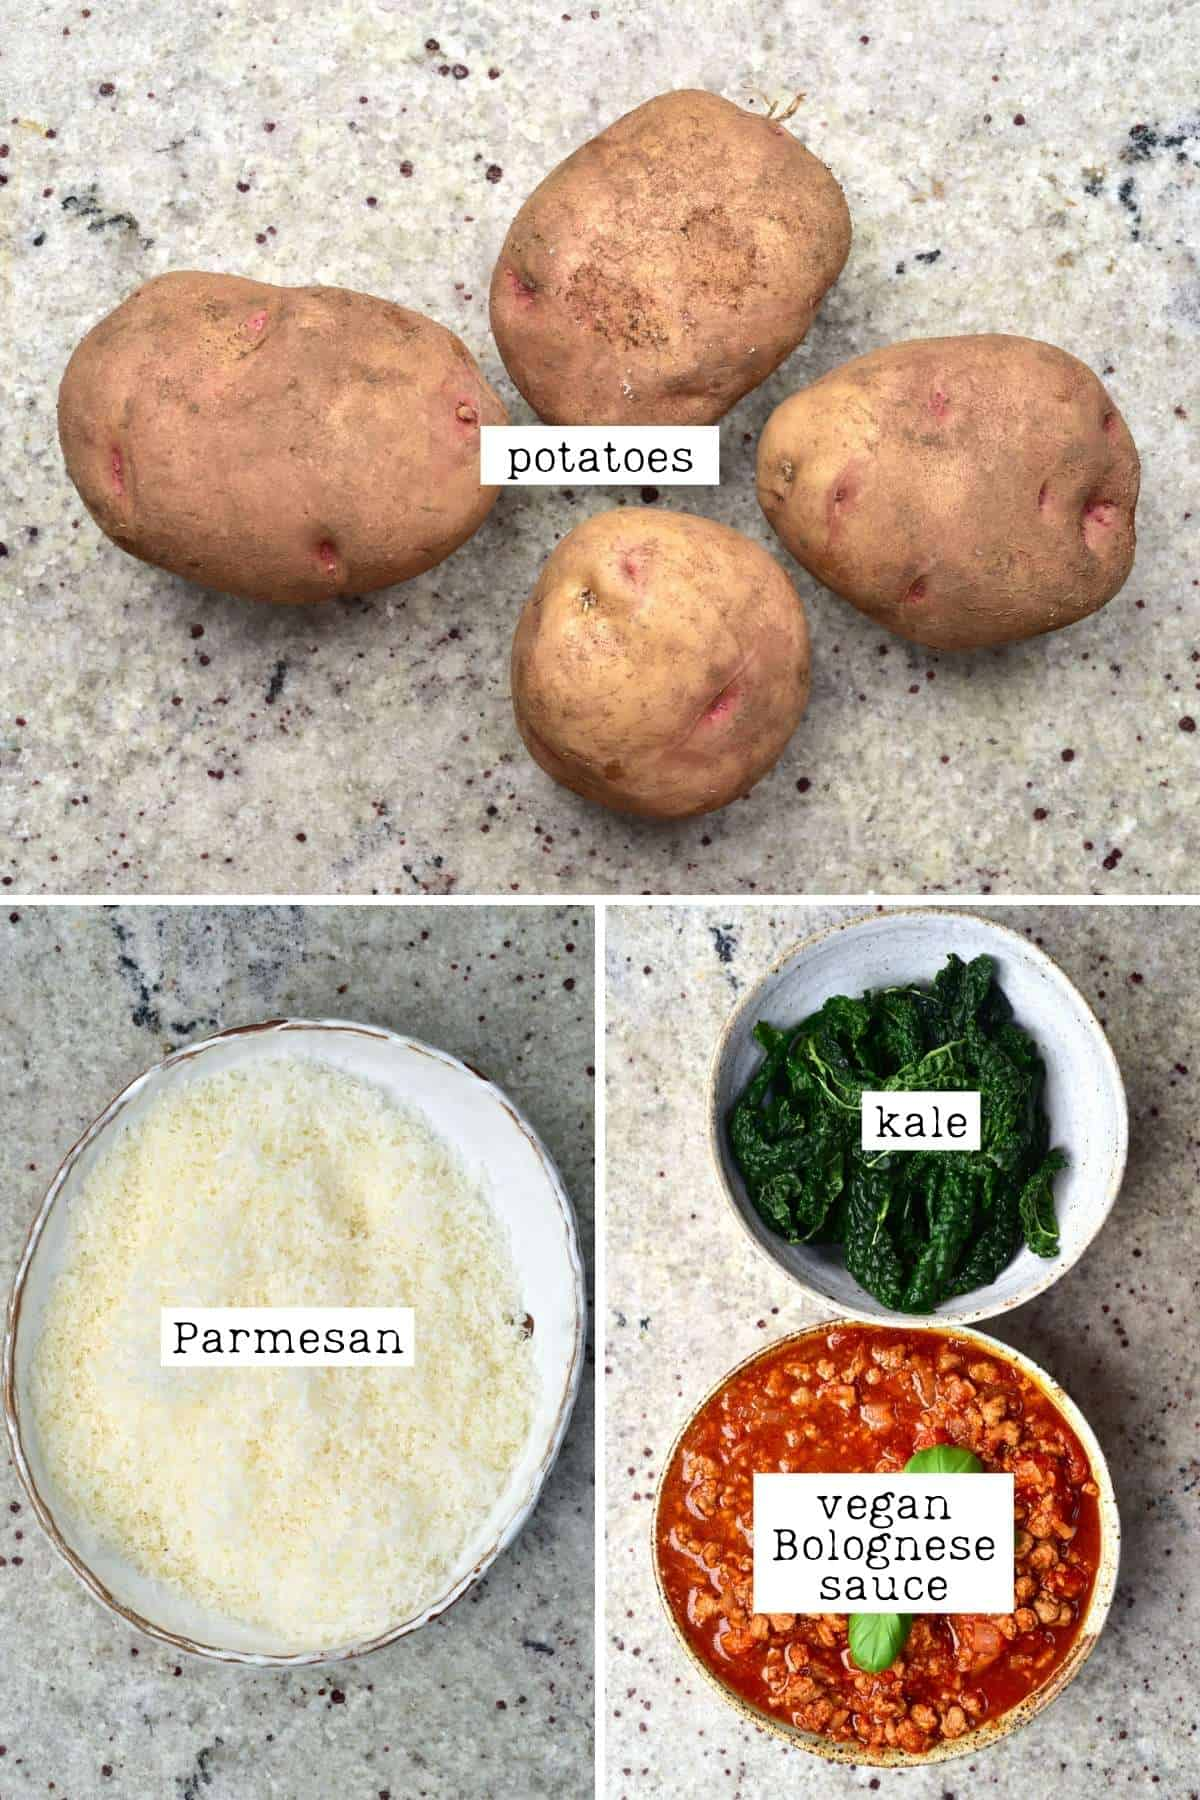 Ingredients for Scalloped potato roll